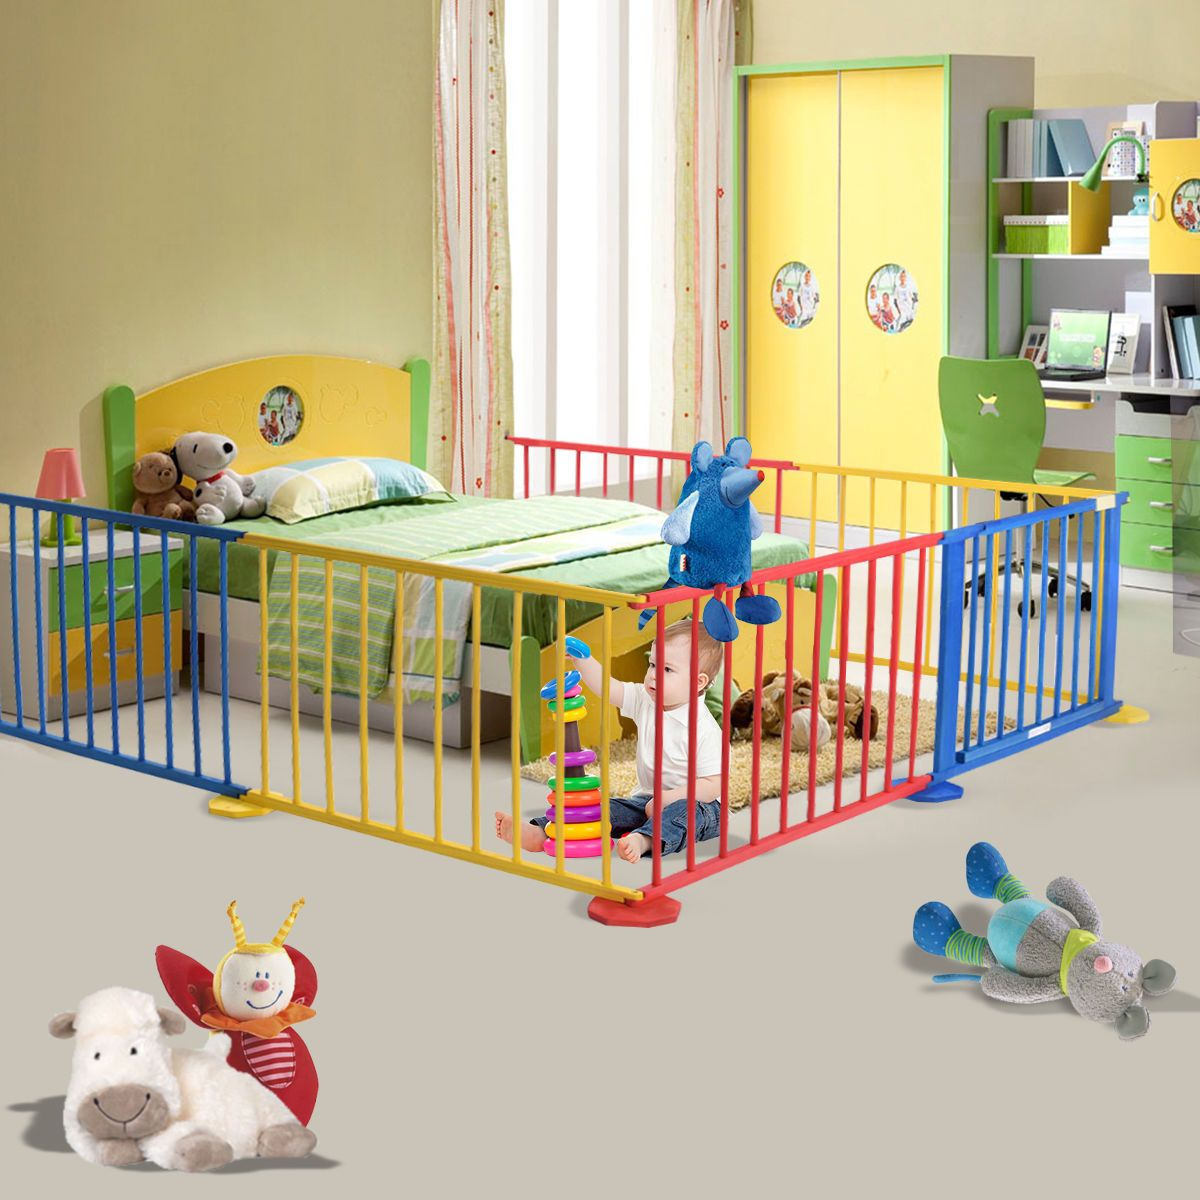 2018 Room Dividers for Babies organizing Ideas for Bedrooms Check